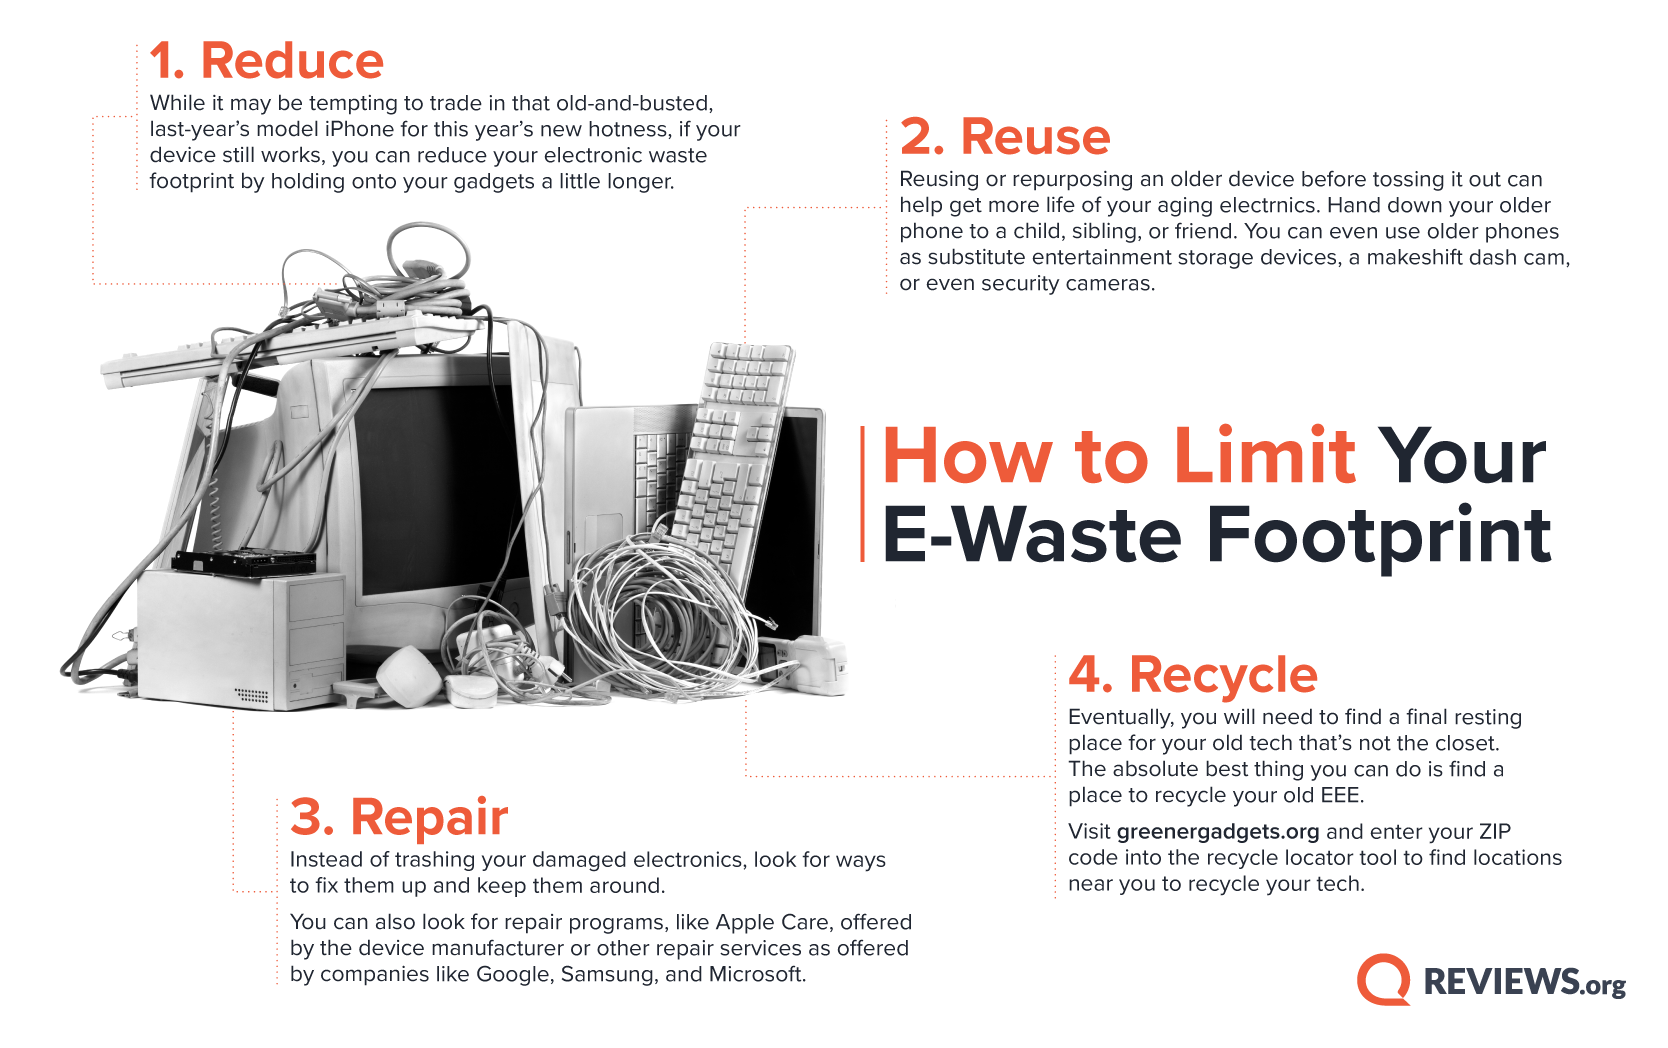 Tips for Limiting Your Electronic Waste